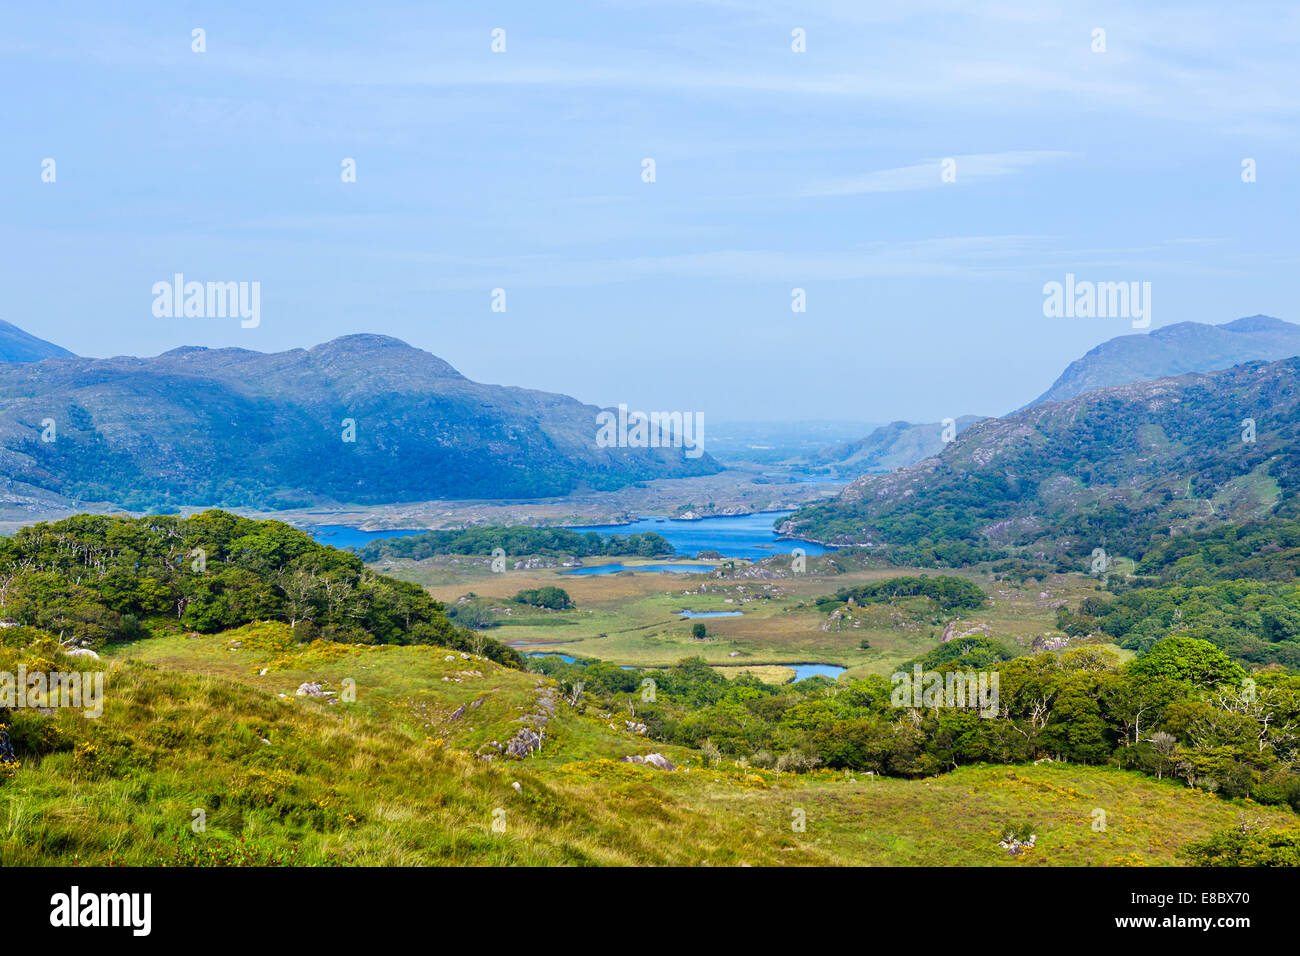 The Lakes of Killarney seen from Ladies View on N71 Ring of Kerry, Killarney National Park, County Kerry, Republic - Stock Image